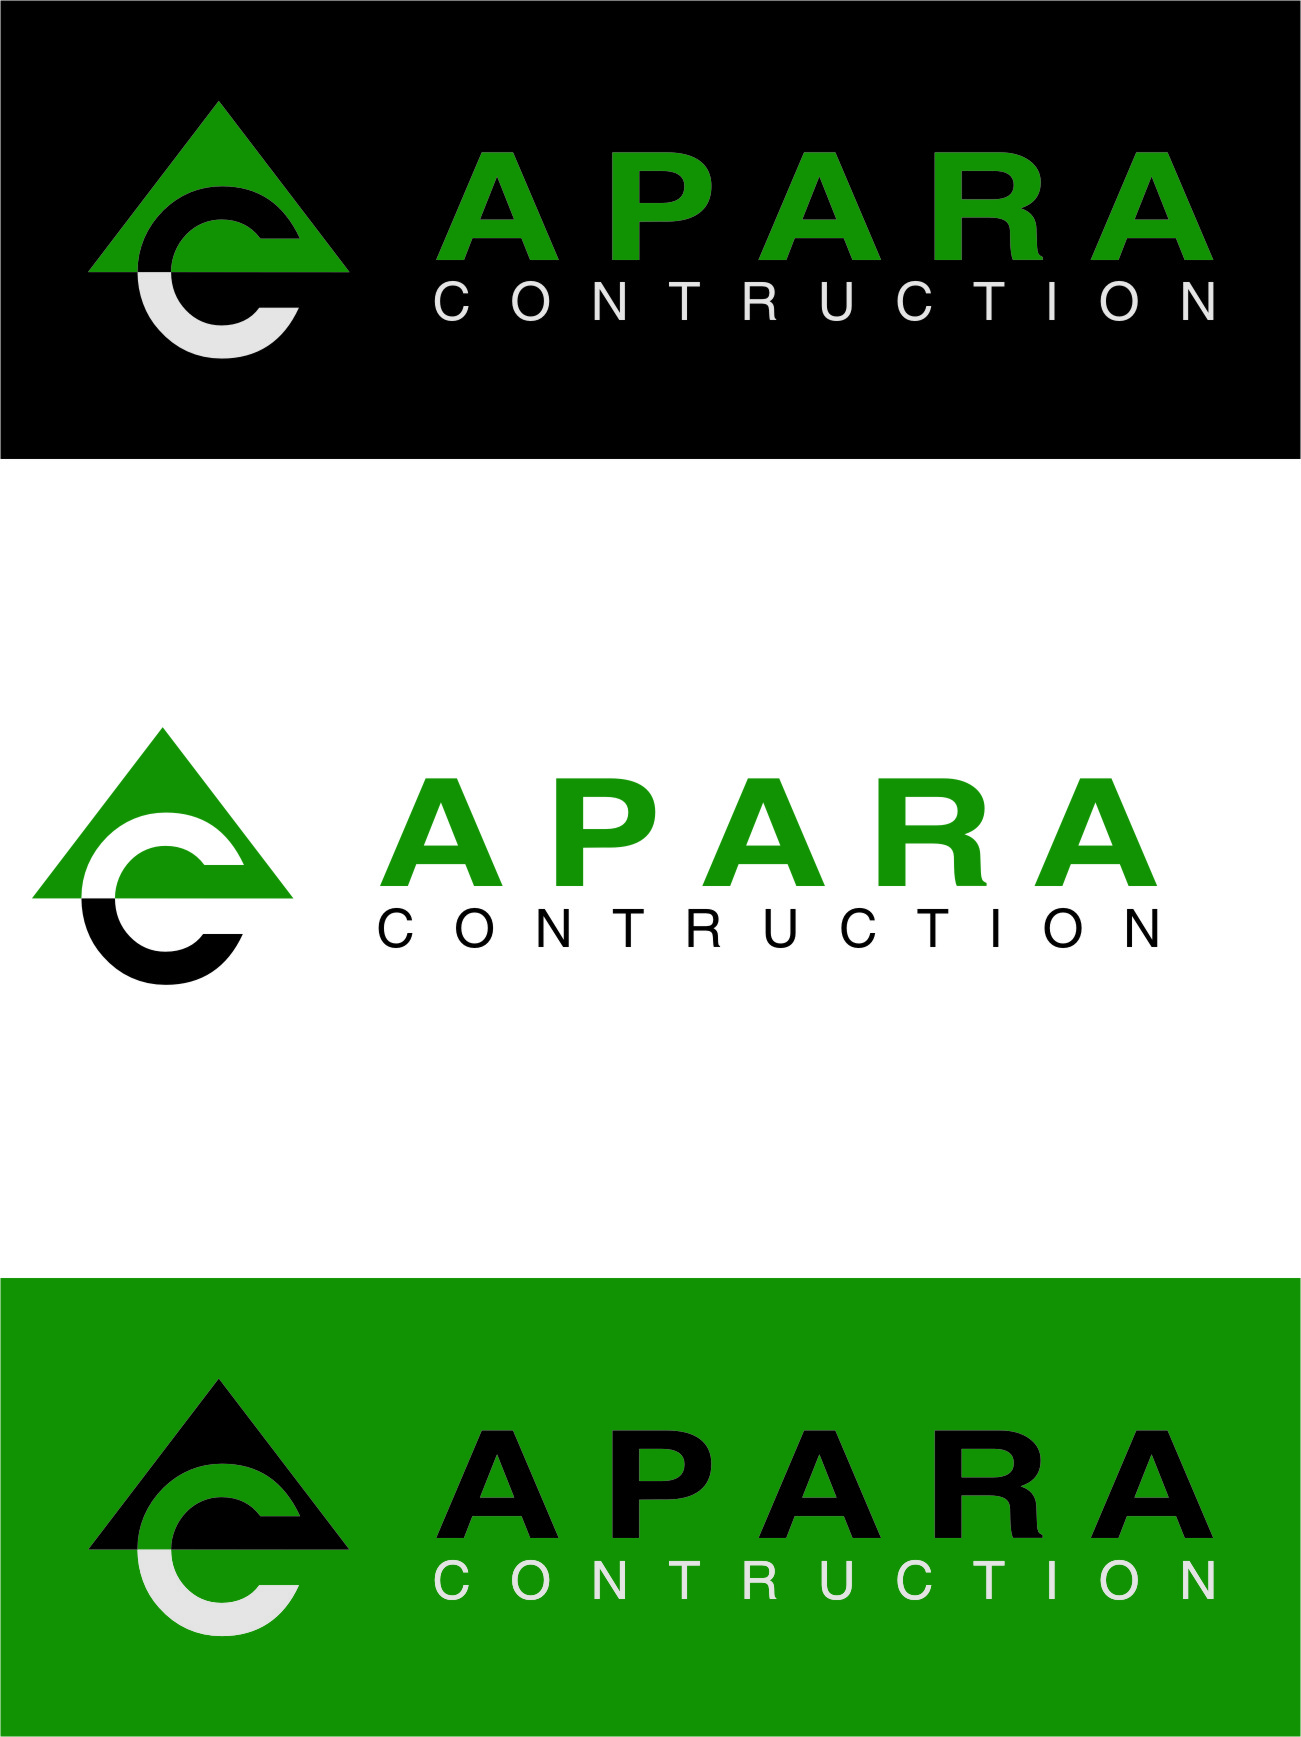 Logo Design by Ngepet_art - Entry No. 200 in the Logo Design Contest Apara Construction Logo Design.